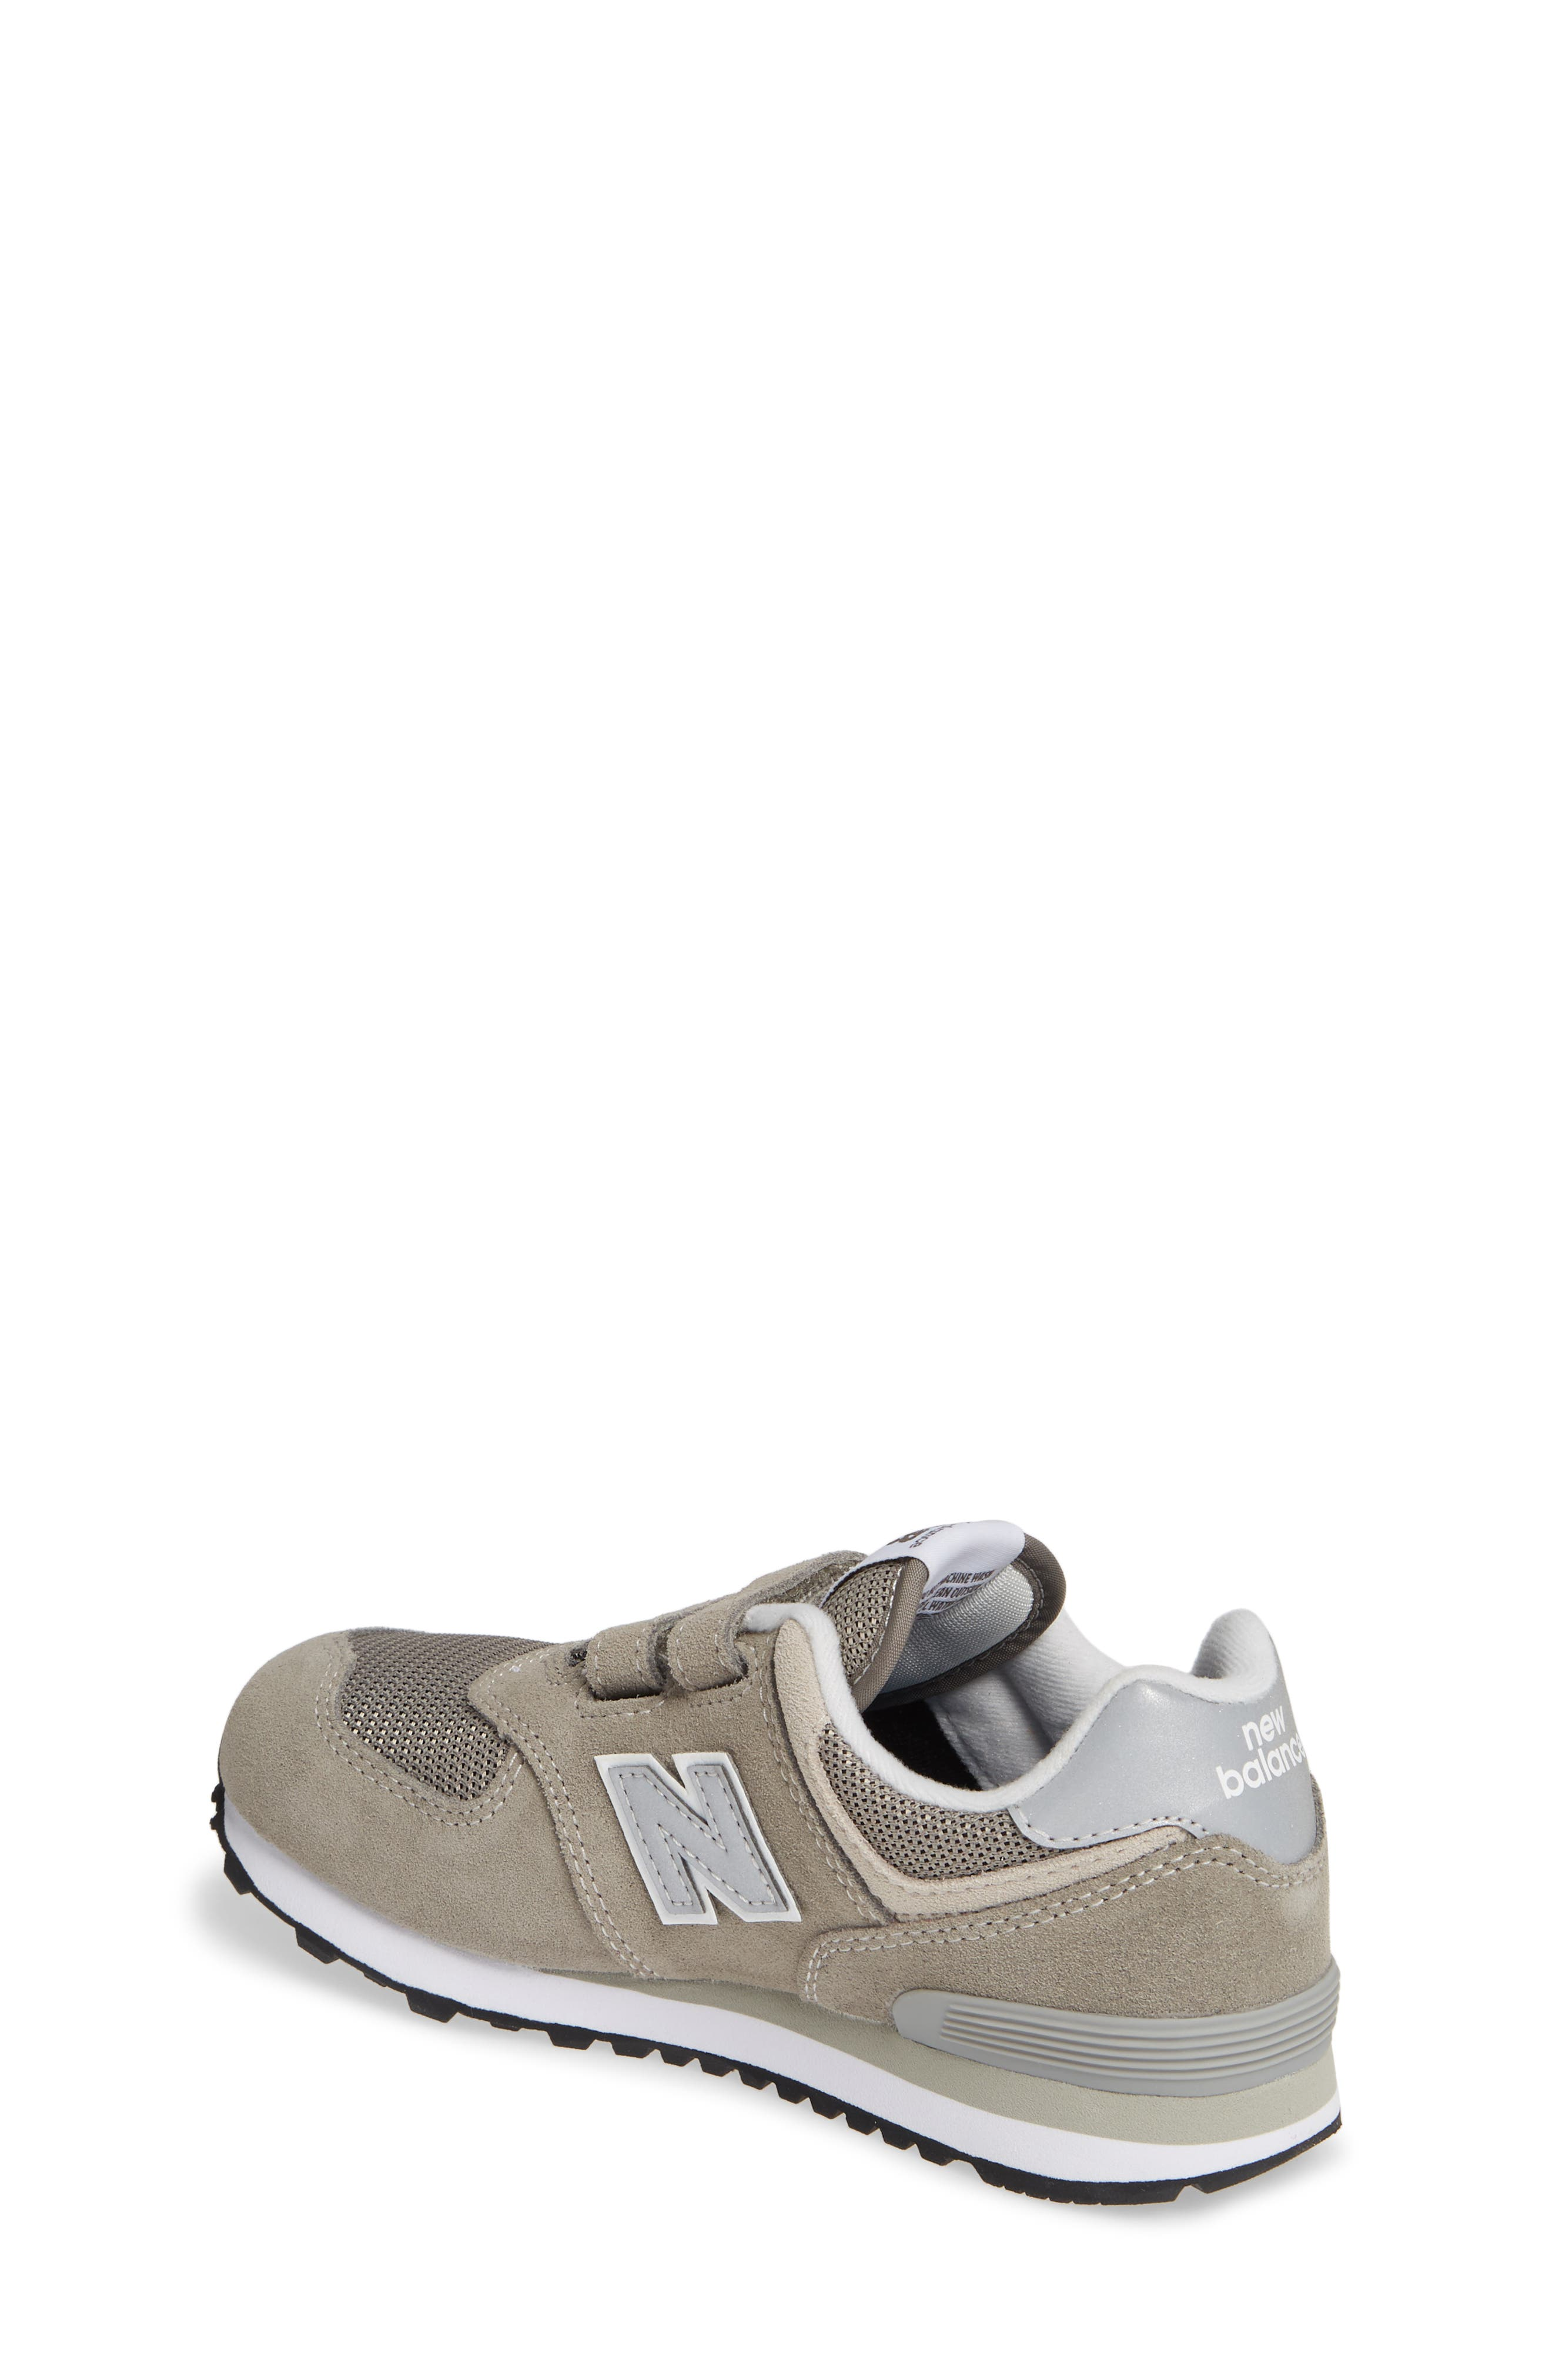 NEW BALANCE, 574 Retro Surf Sneaker, Alternate thumbnail 2, color, GREY